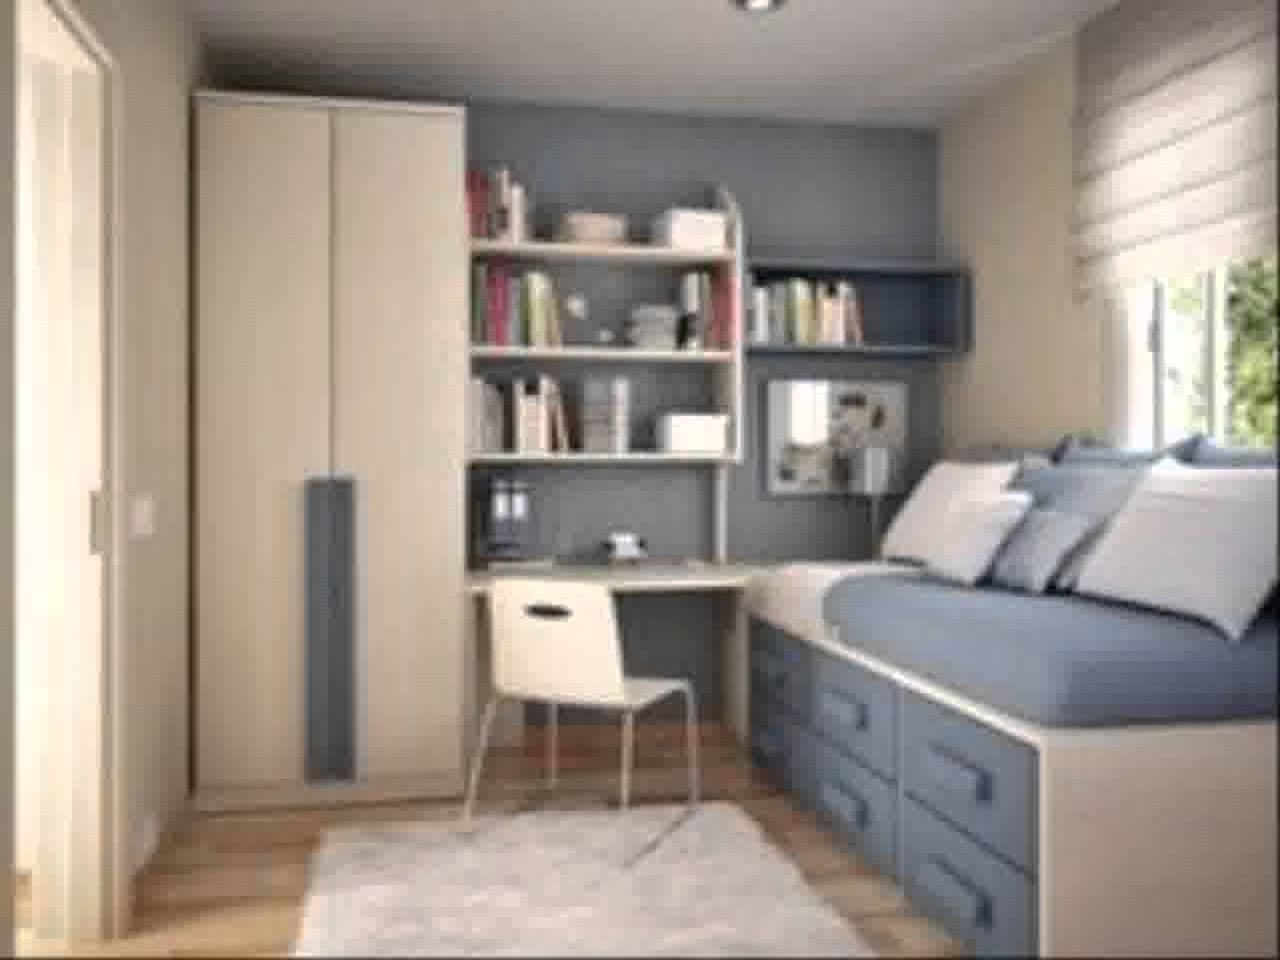 Bedroom Cabinets Image Via Wwwolxin Interior Bedroom Furniture Throughout Study Cupboards (Image 8 of 12)